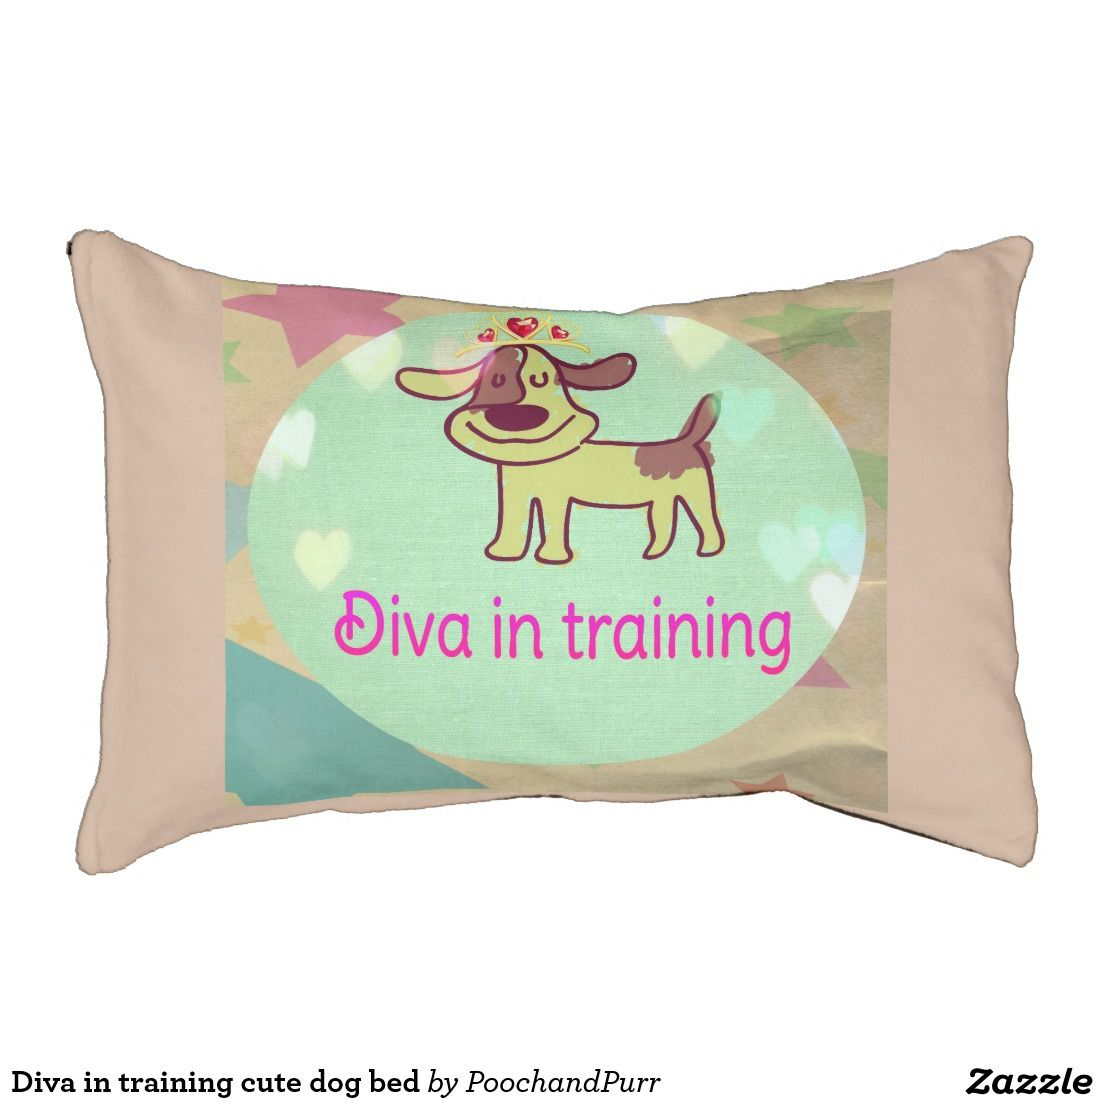 Diva in training cute dog bed small dog bed